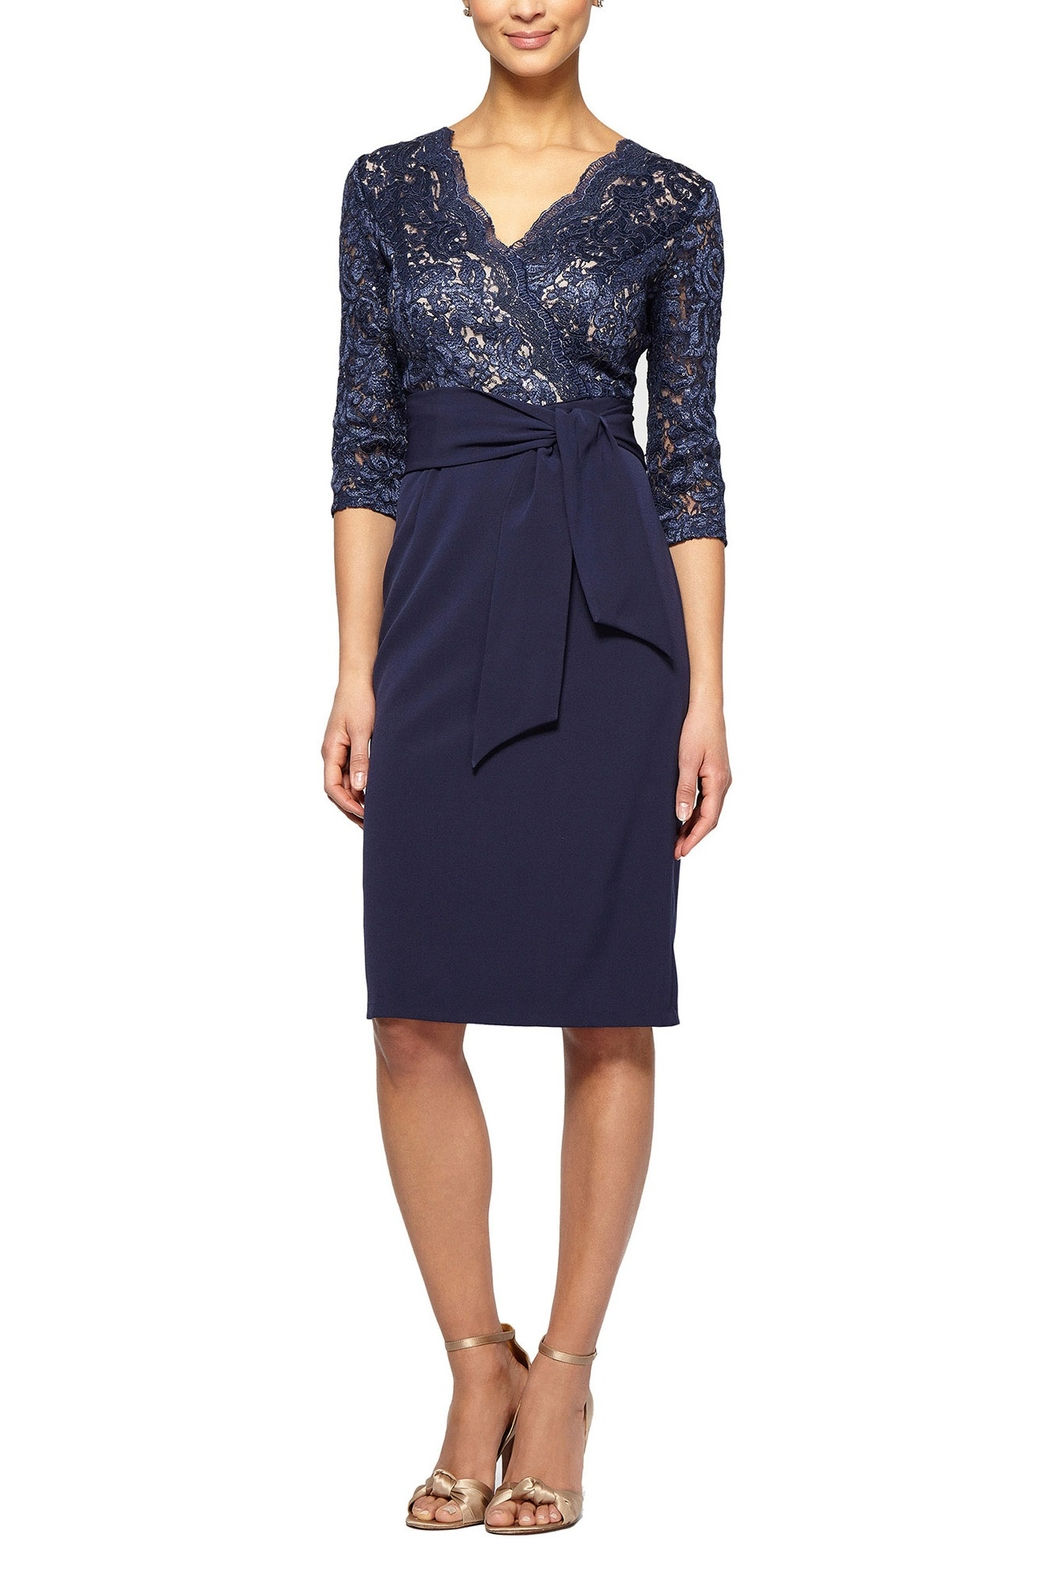 Alex Evenings Navy short dress - Front Cropped Image